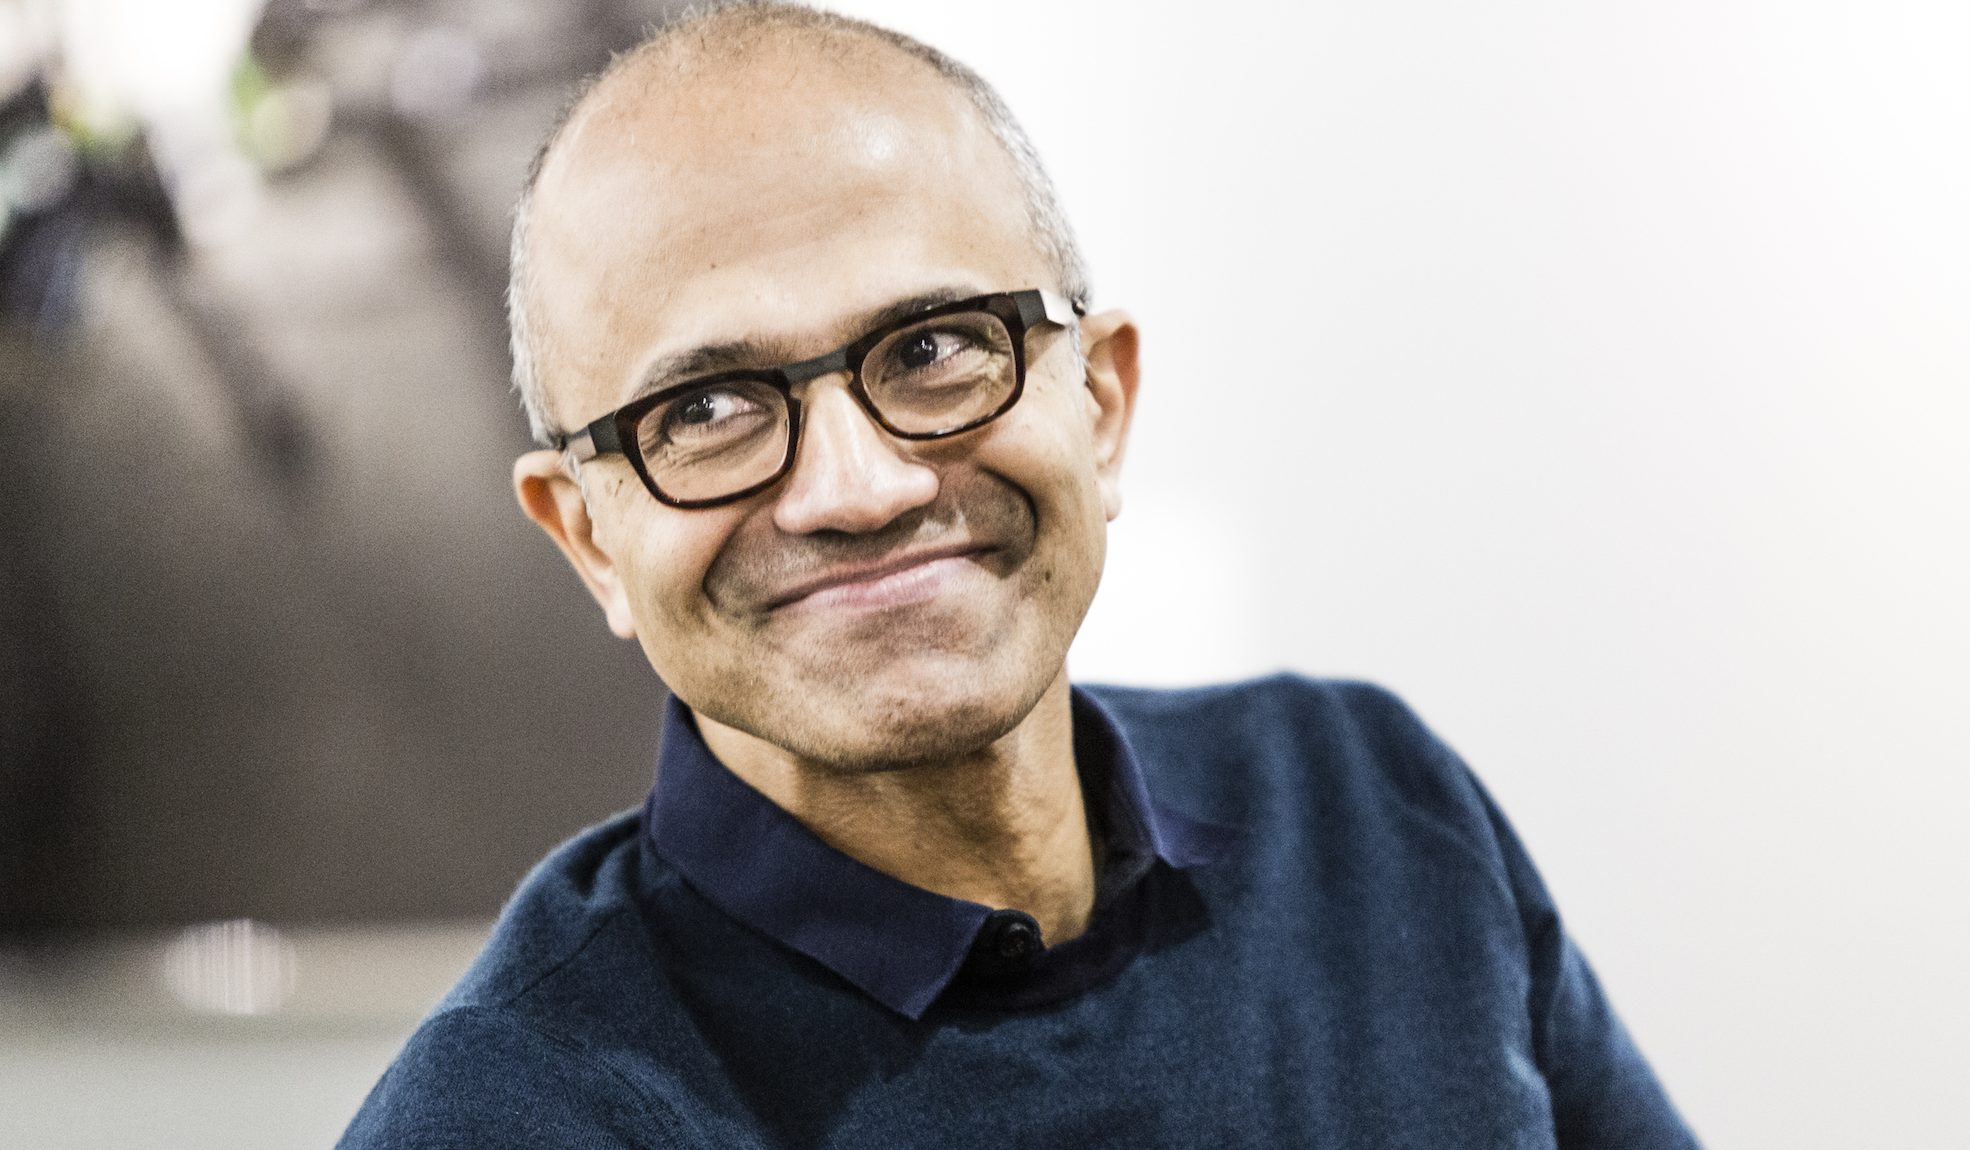 New Microsoft Report Celebrates Diversity and Inclusion Progress